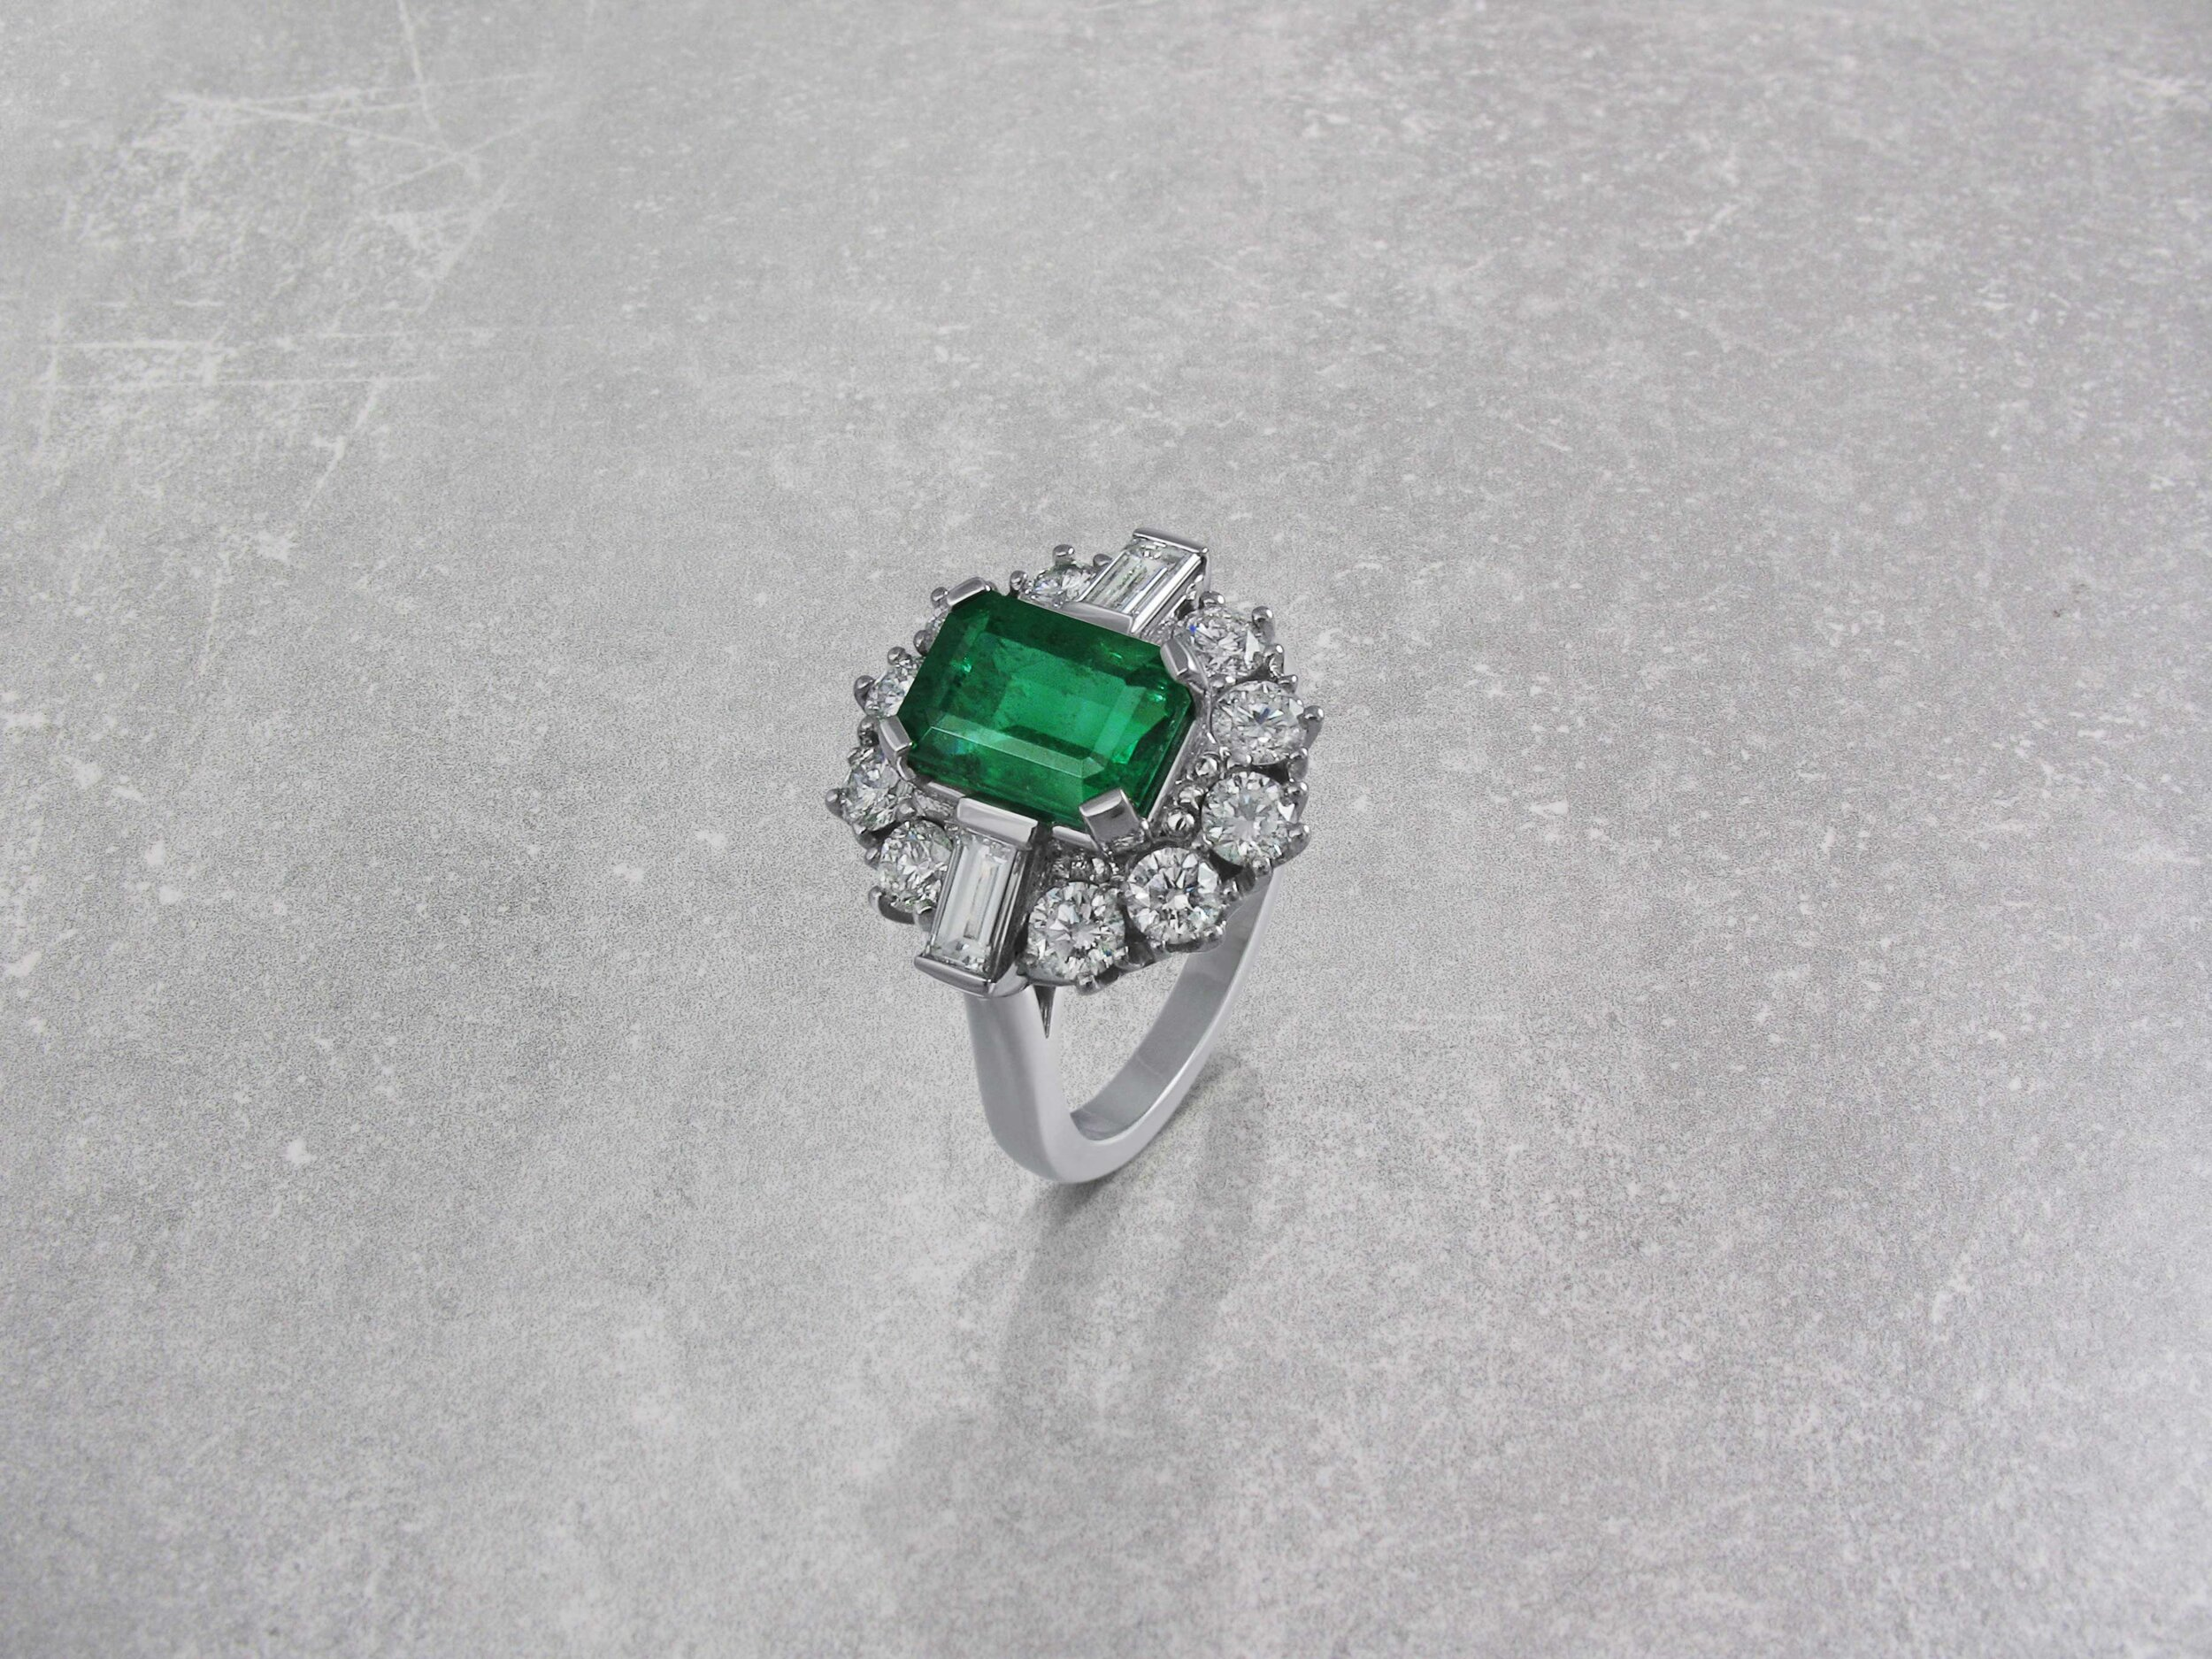 emerald-and-diamond-vintage-style-cluster-ring.jpg